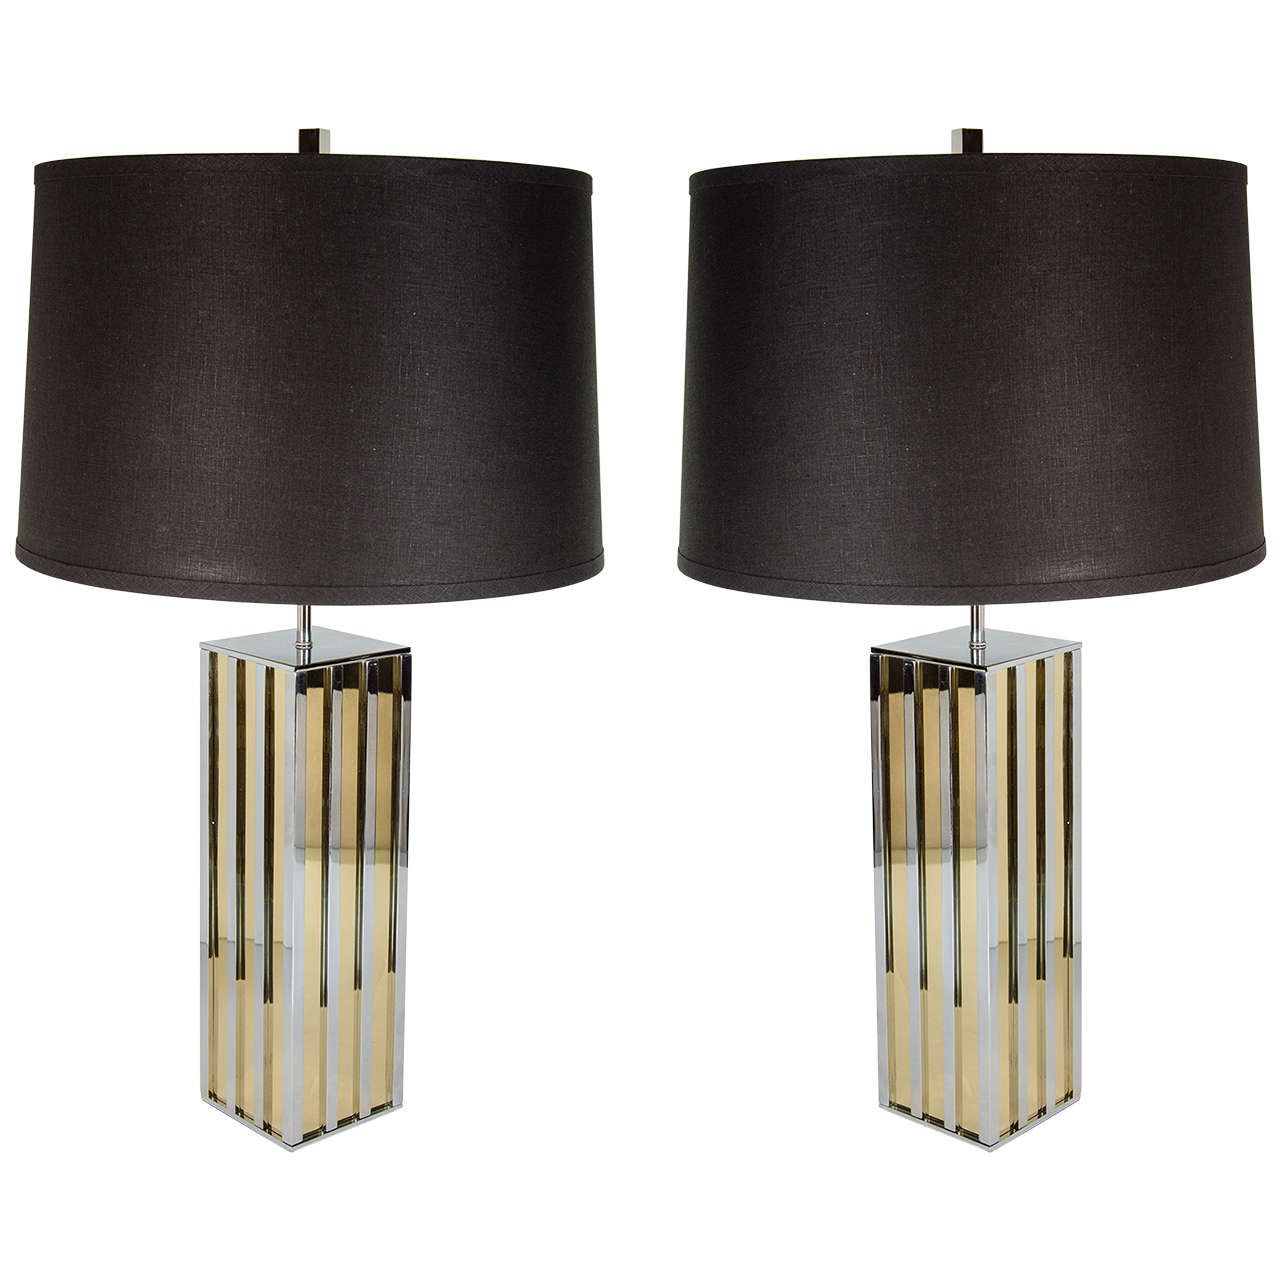 Ultra Modern Table Lamps Ultra Chic Pair Of Mid Century Modern Table Lamps In The